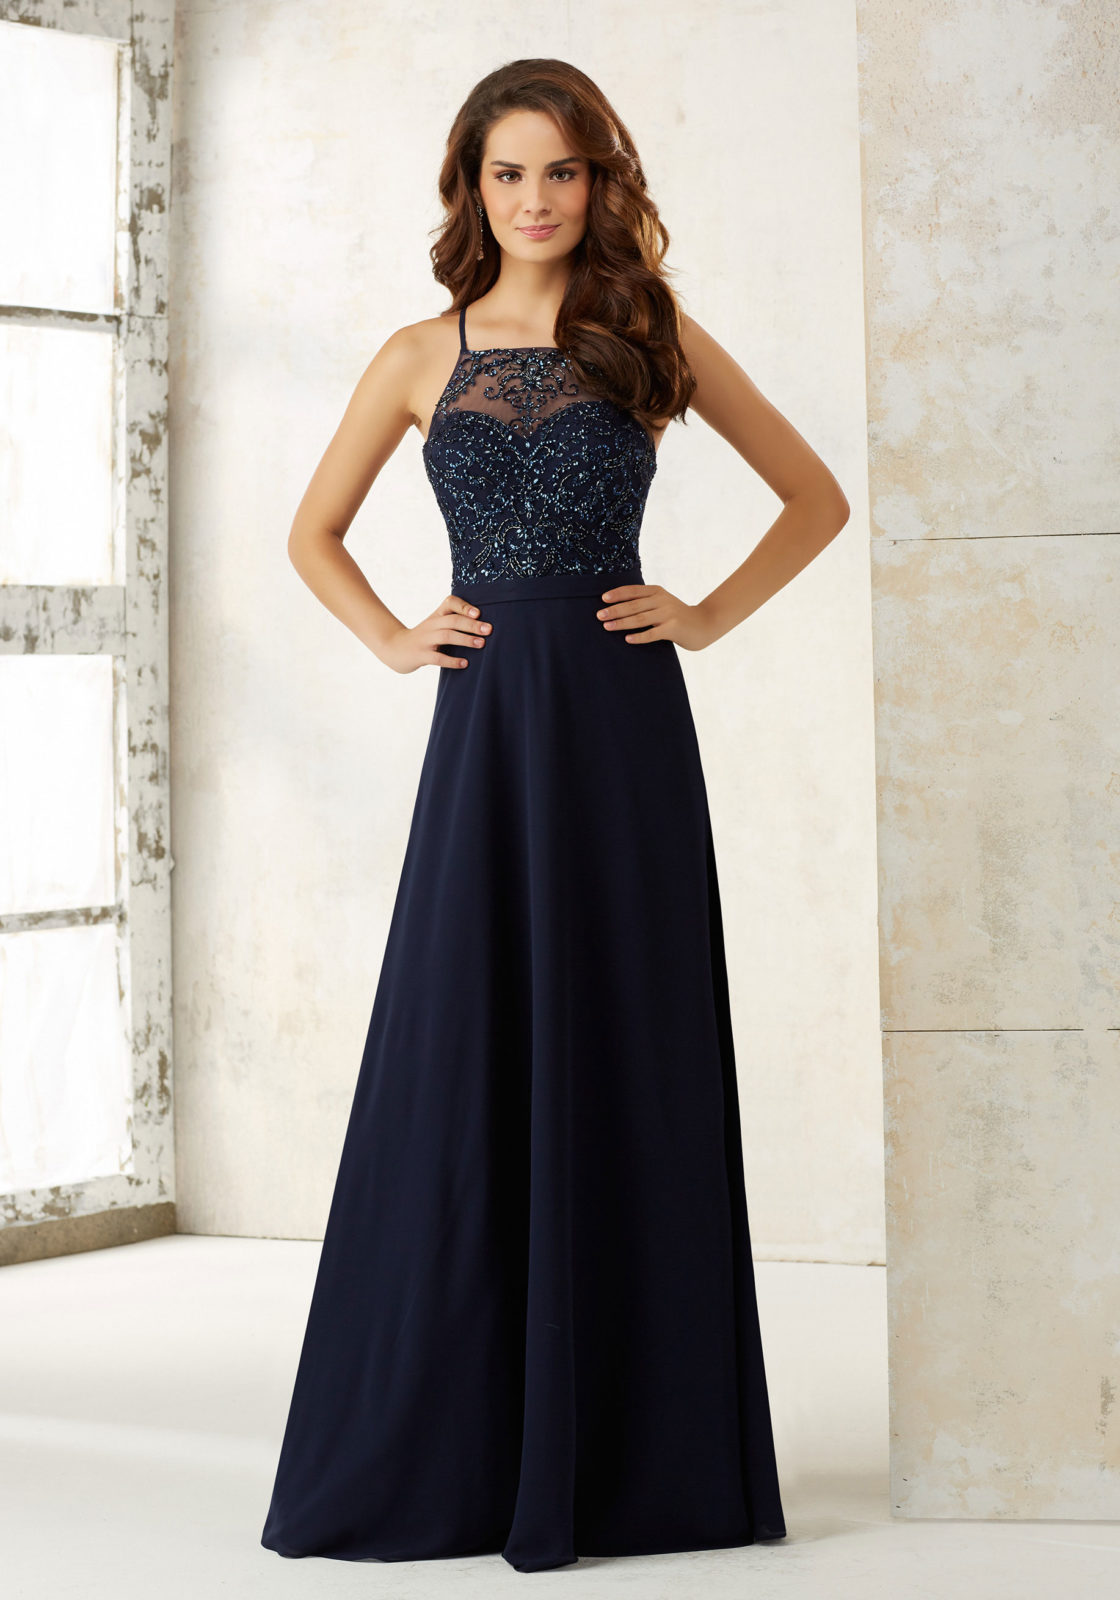 Popular romantic bridesmaids dresses buy cheap romantic romantic beading navy blue long bridesmaid dress 2017 mermaid spaghetti wedding party dresses junior maid of ombrellifo Images